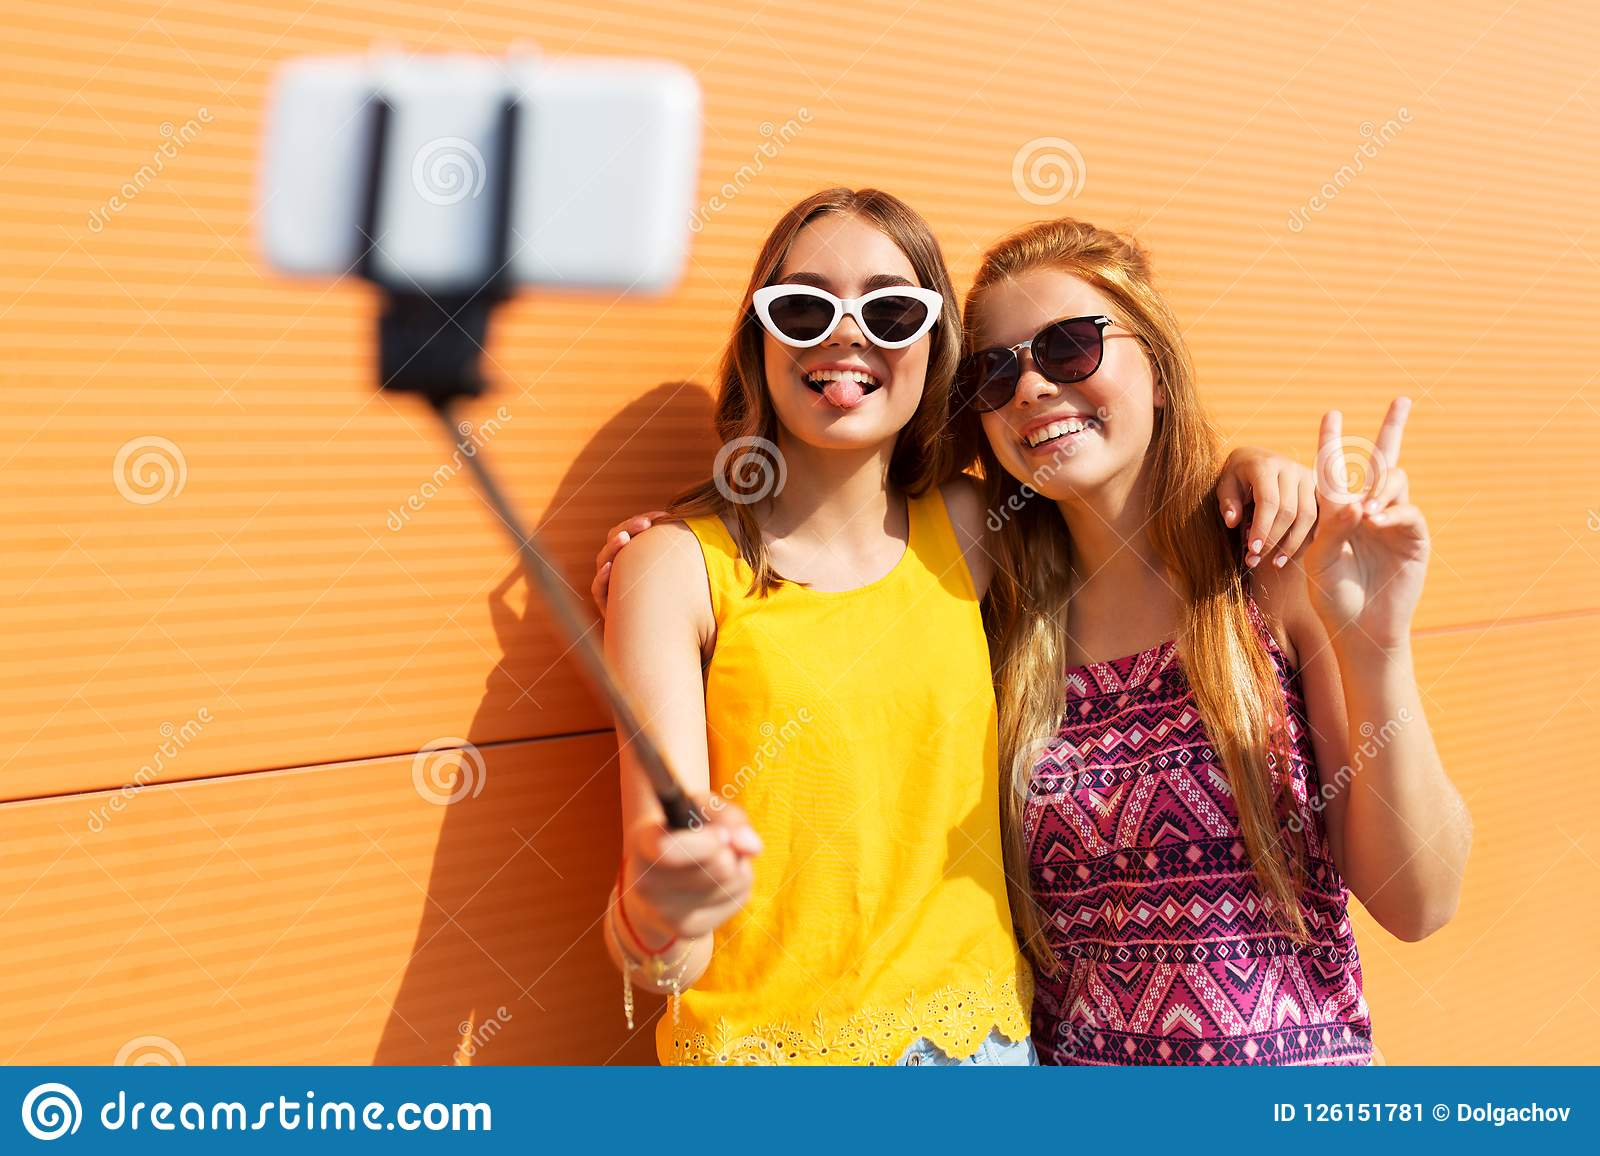 Teenage girls taking picture by selfie stick